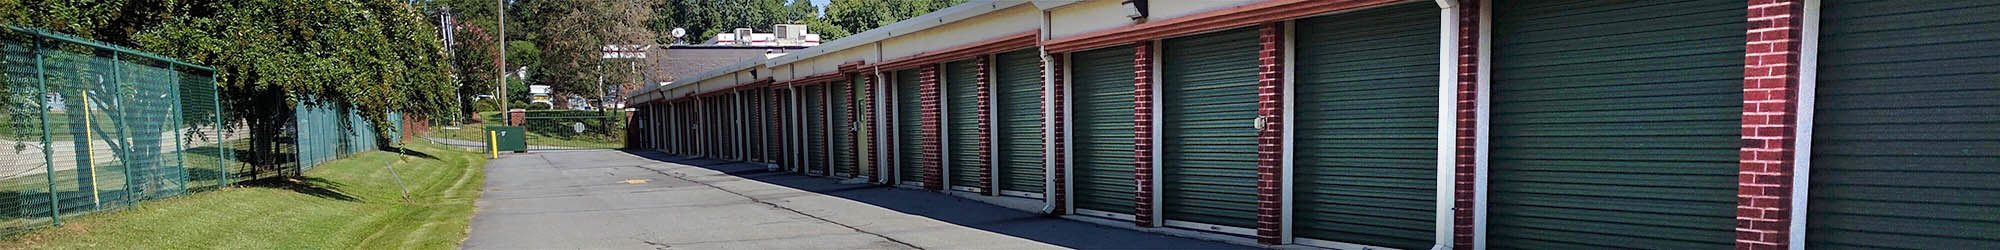 Self Storage at Reynolda Storage in Winston Salem